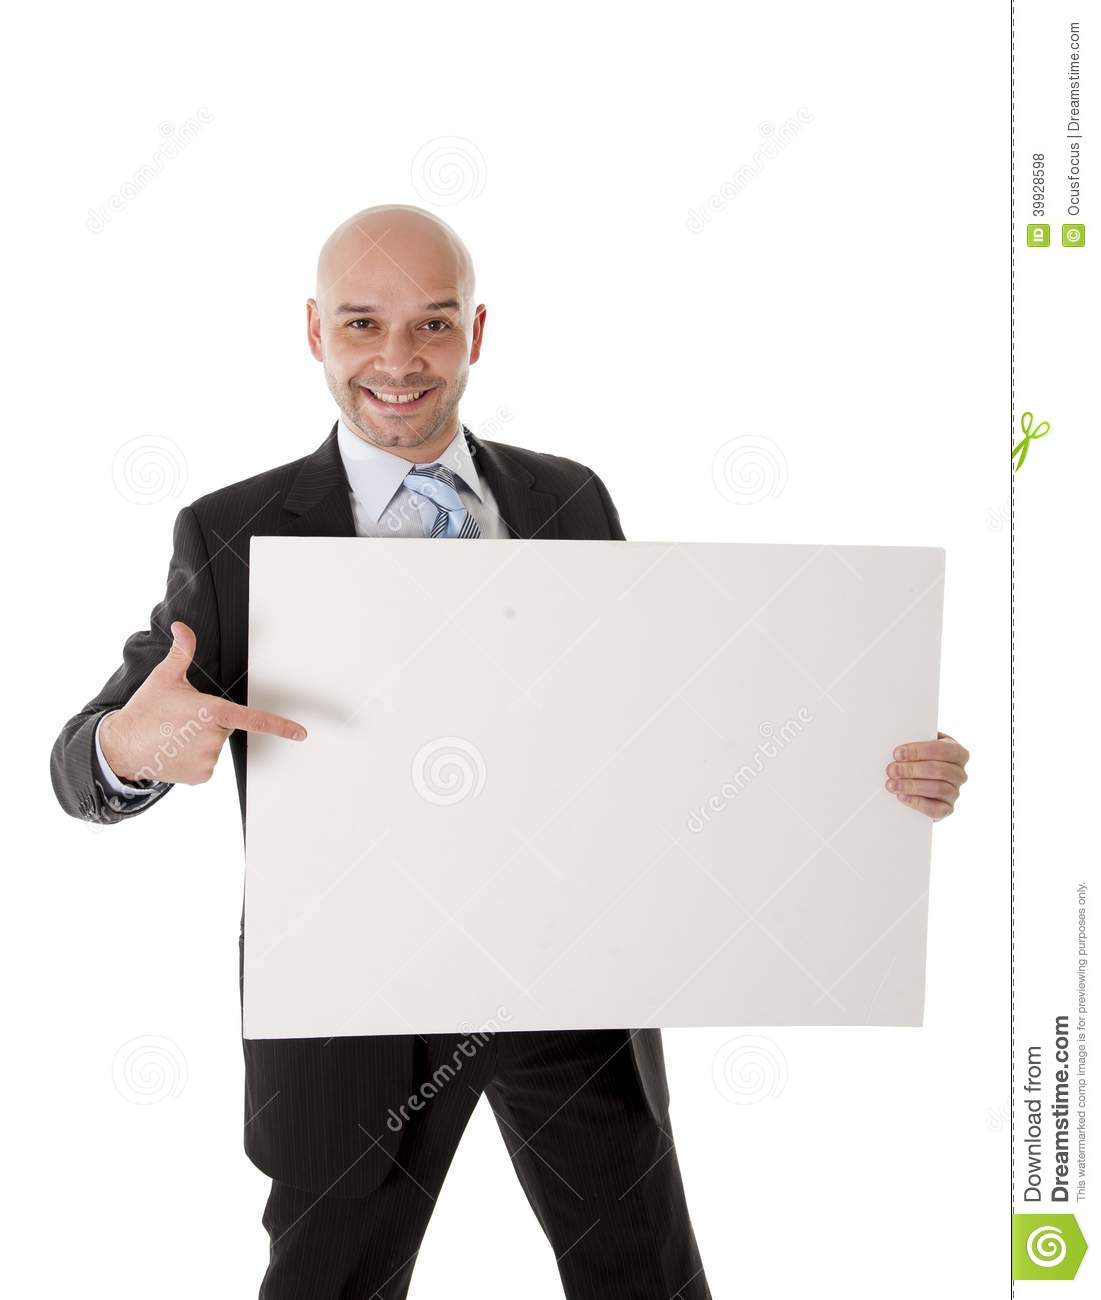 Bald Latin Business Man Holding Blank Sign For